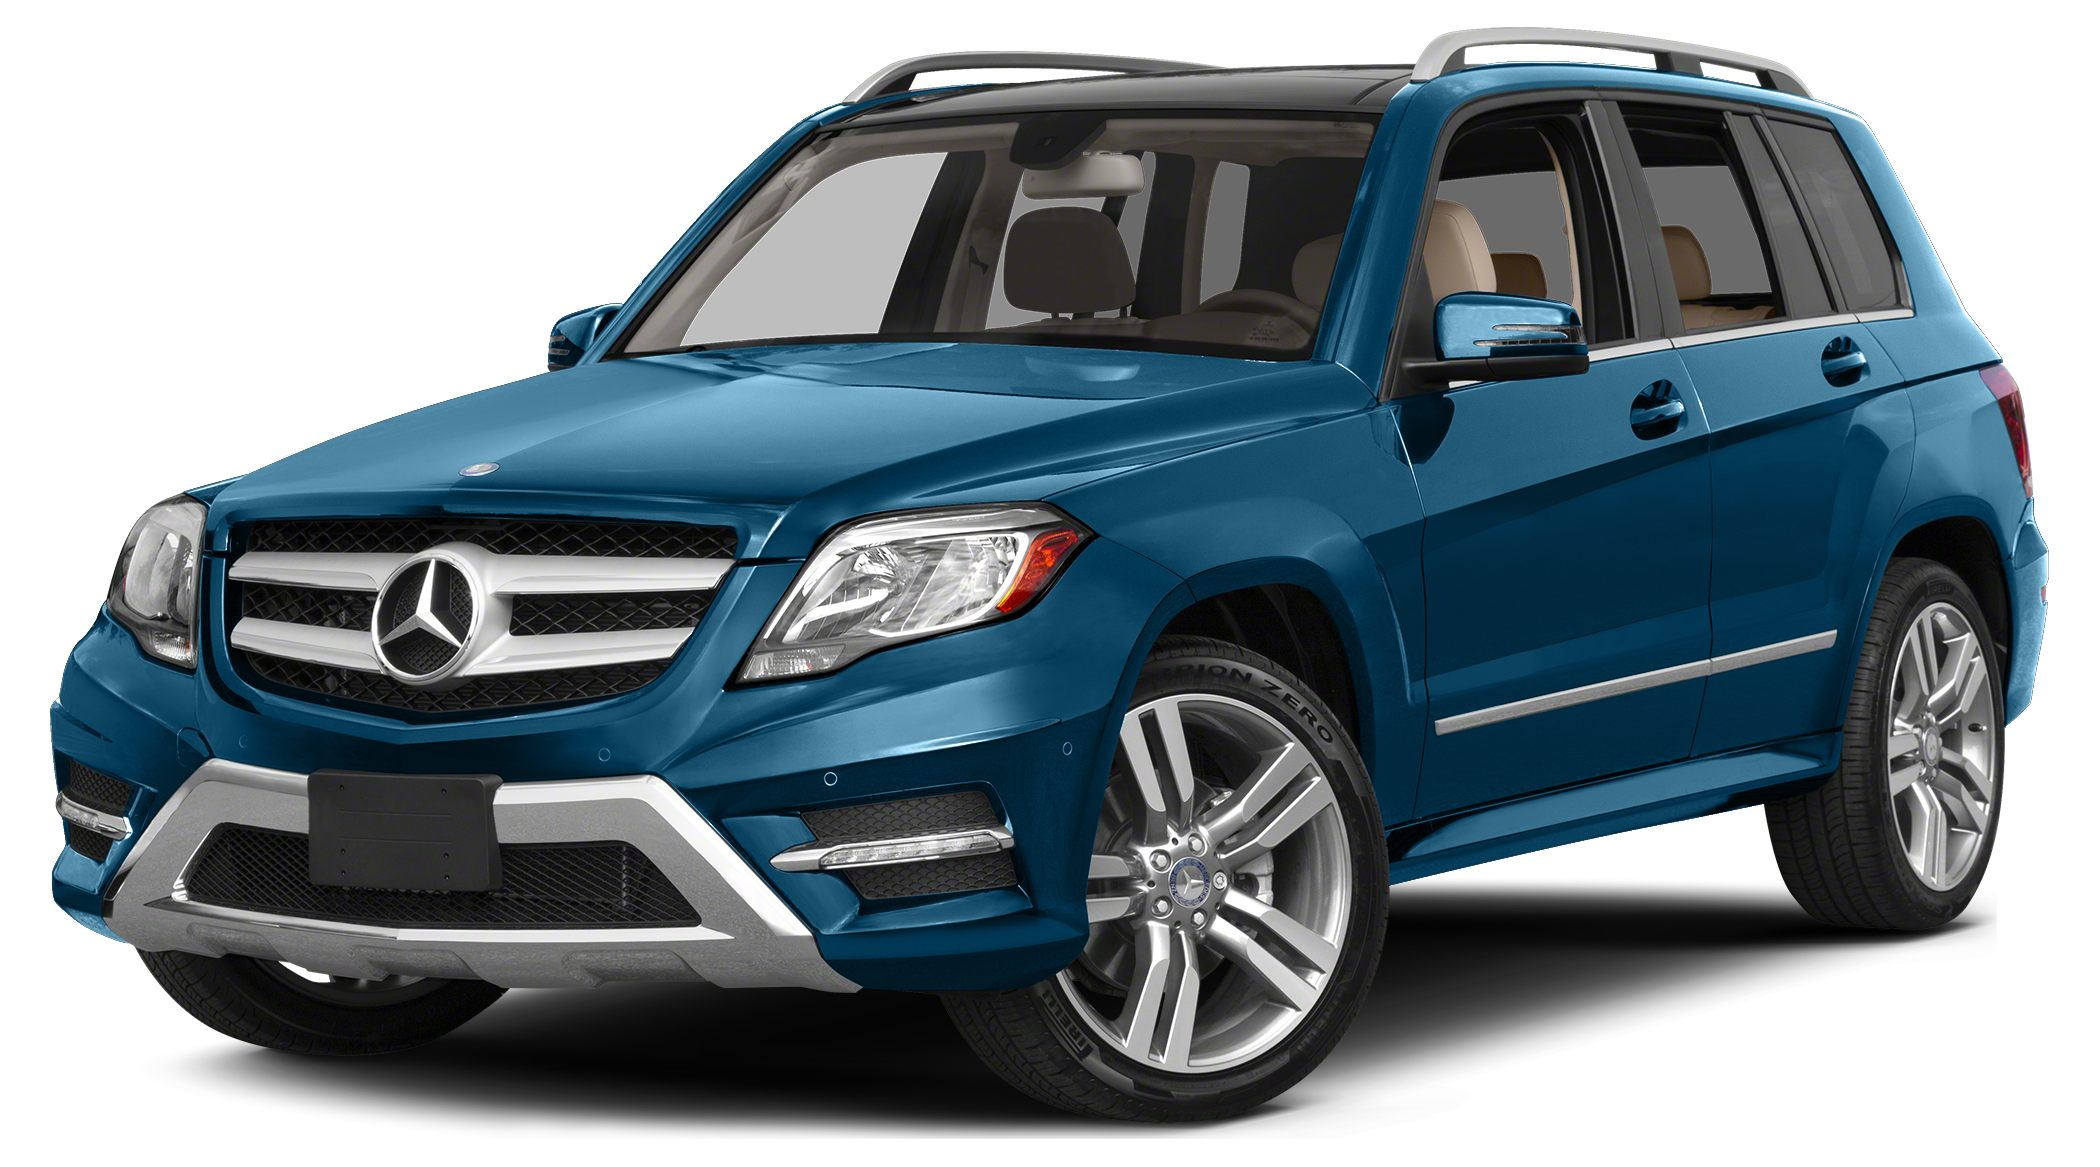 2013 MERCEDES GLK-Class GLK350 CERTIFIED PRE-OWNED CARFAX CERTIFIED 2013 MERCEDES BENZ GLK3